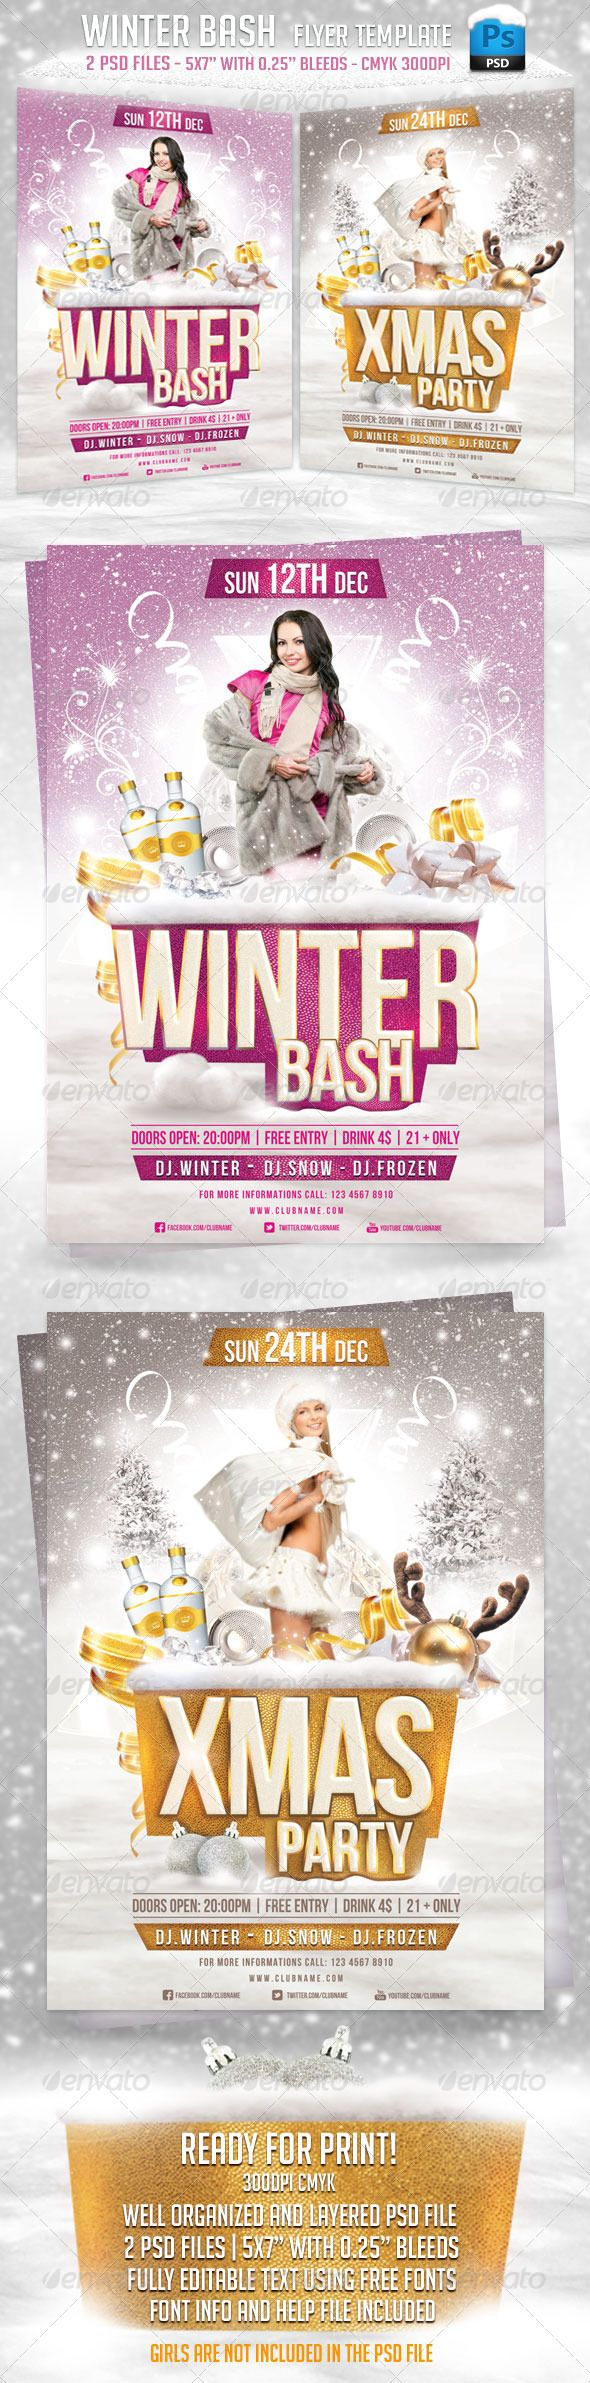 1000 images about flyers fonts flyer template and winter bash flyer template